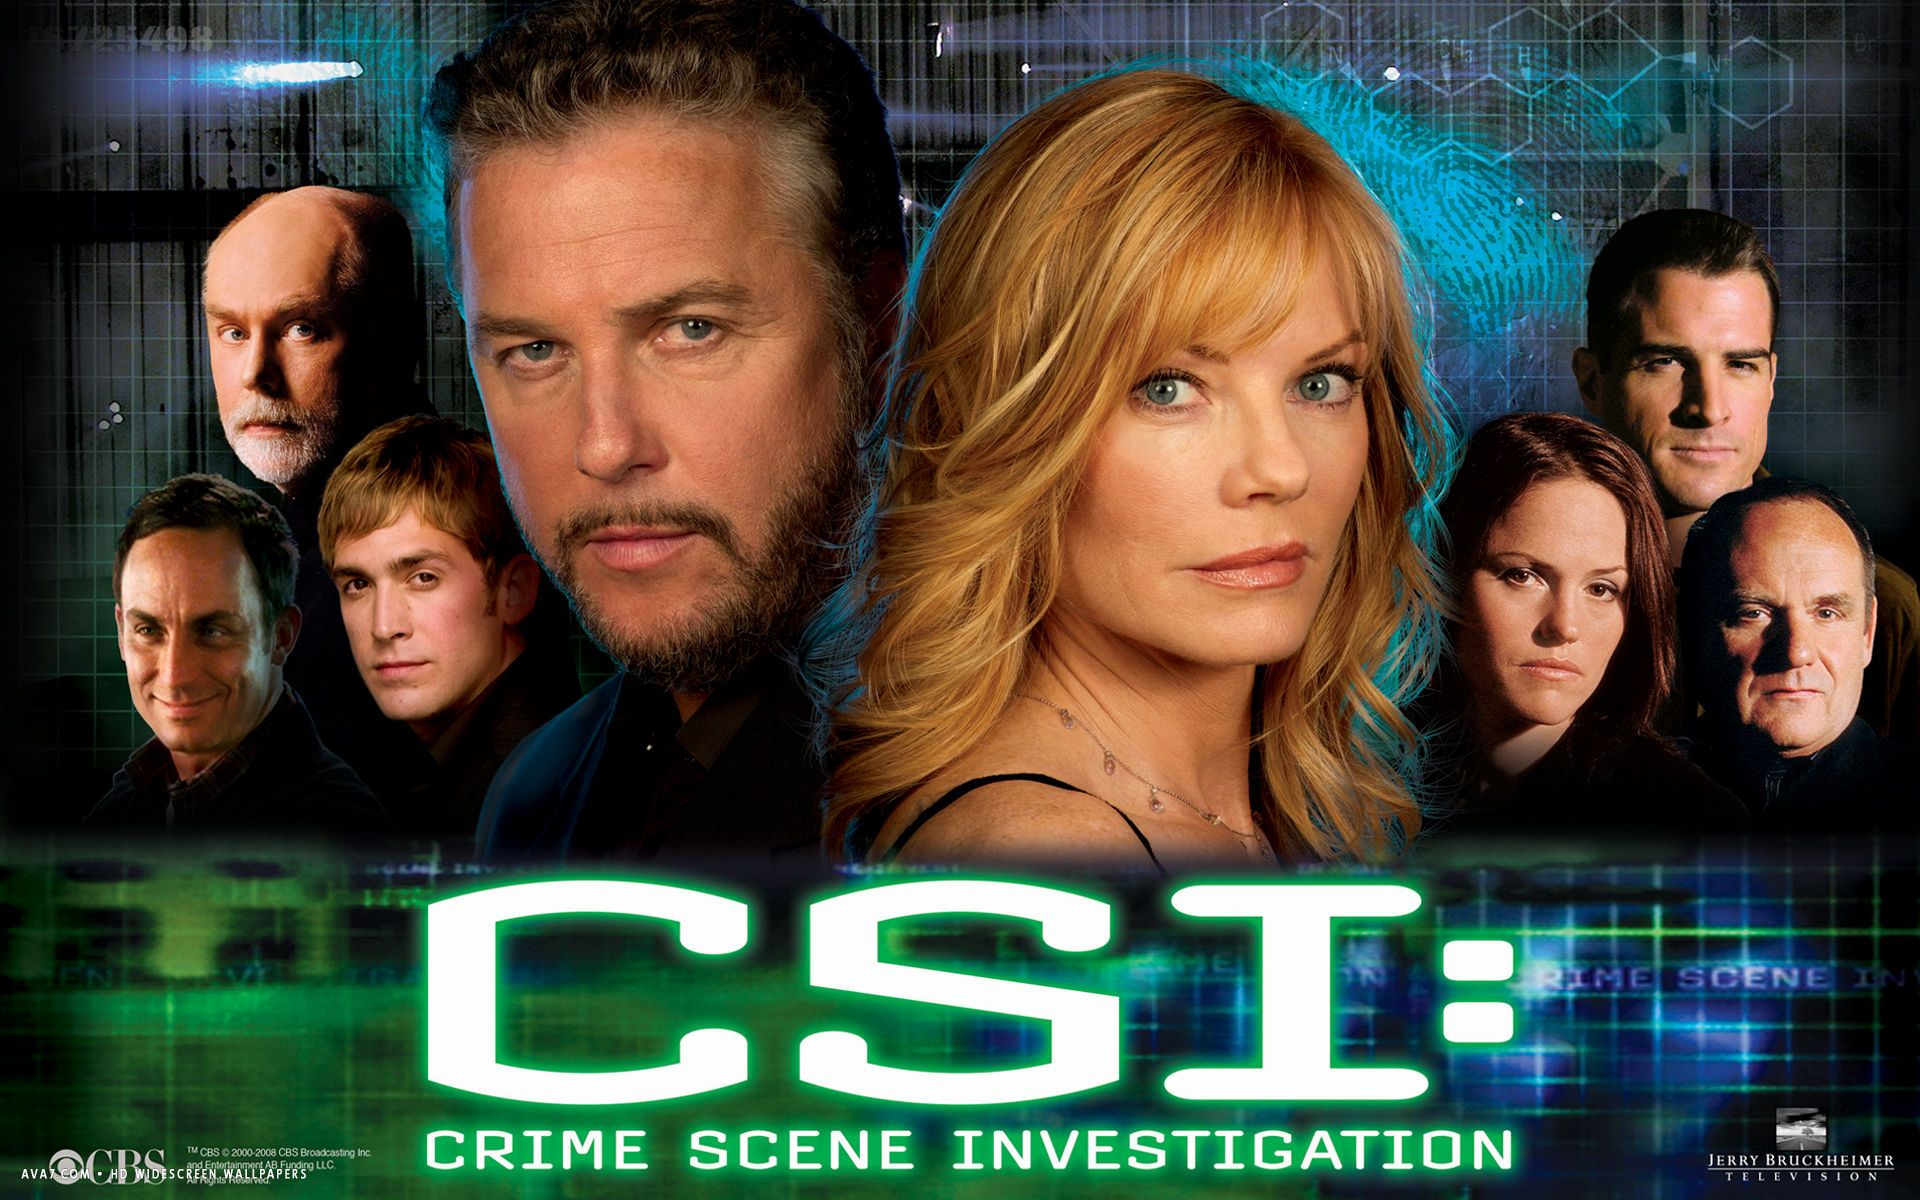 Csi Tv Show Wallpapers Top Free Csi Tv Show Backgrounds